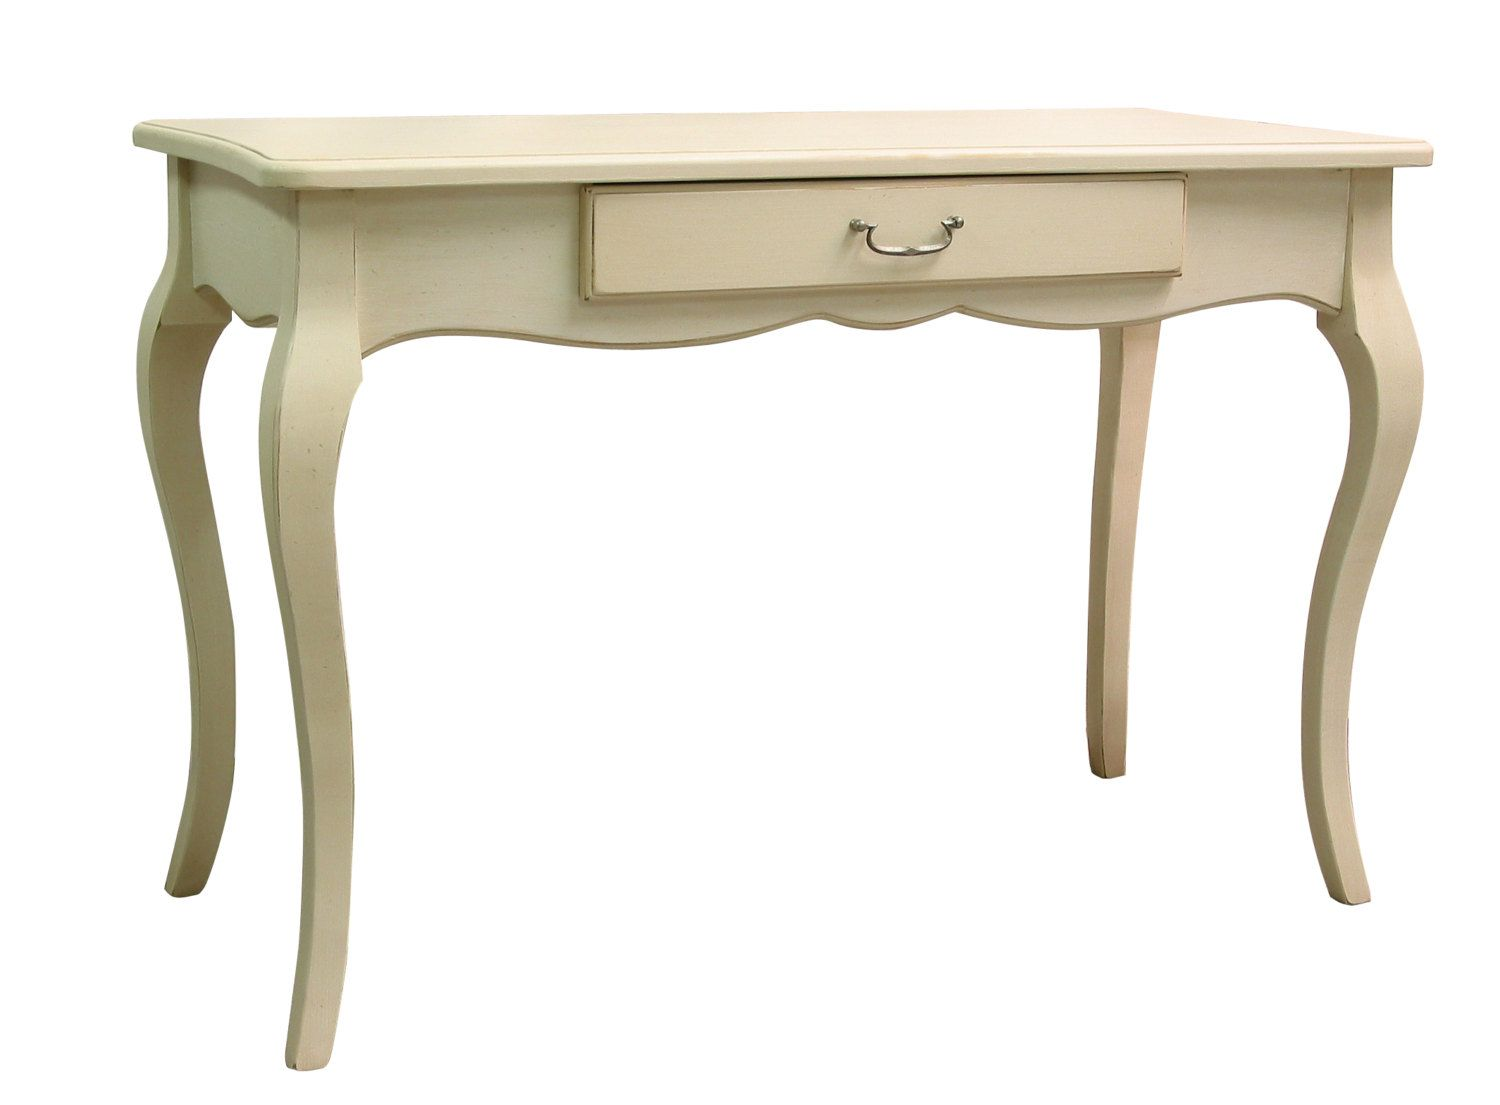 Writing deskwhite french provincial desk i want this for my custom color for christine writing desk white french provincial desk chabby painted make up table laptop desk geotapseo Gallery